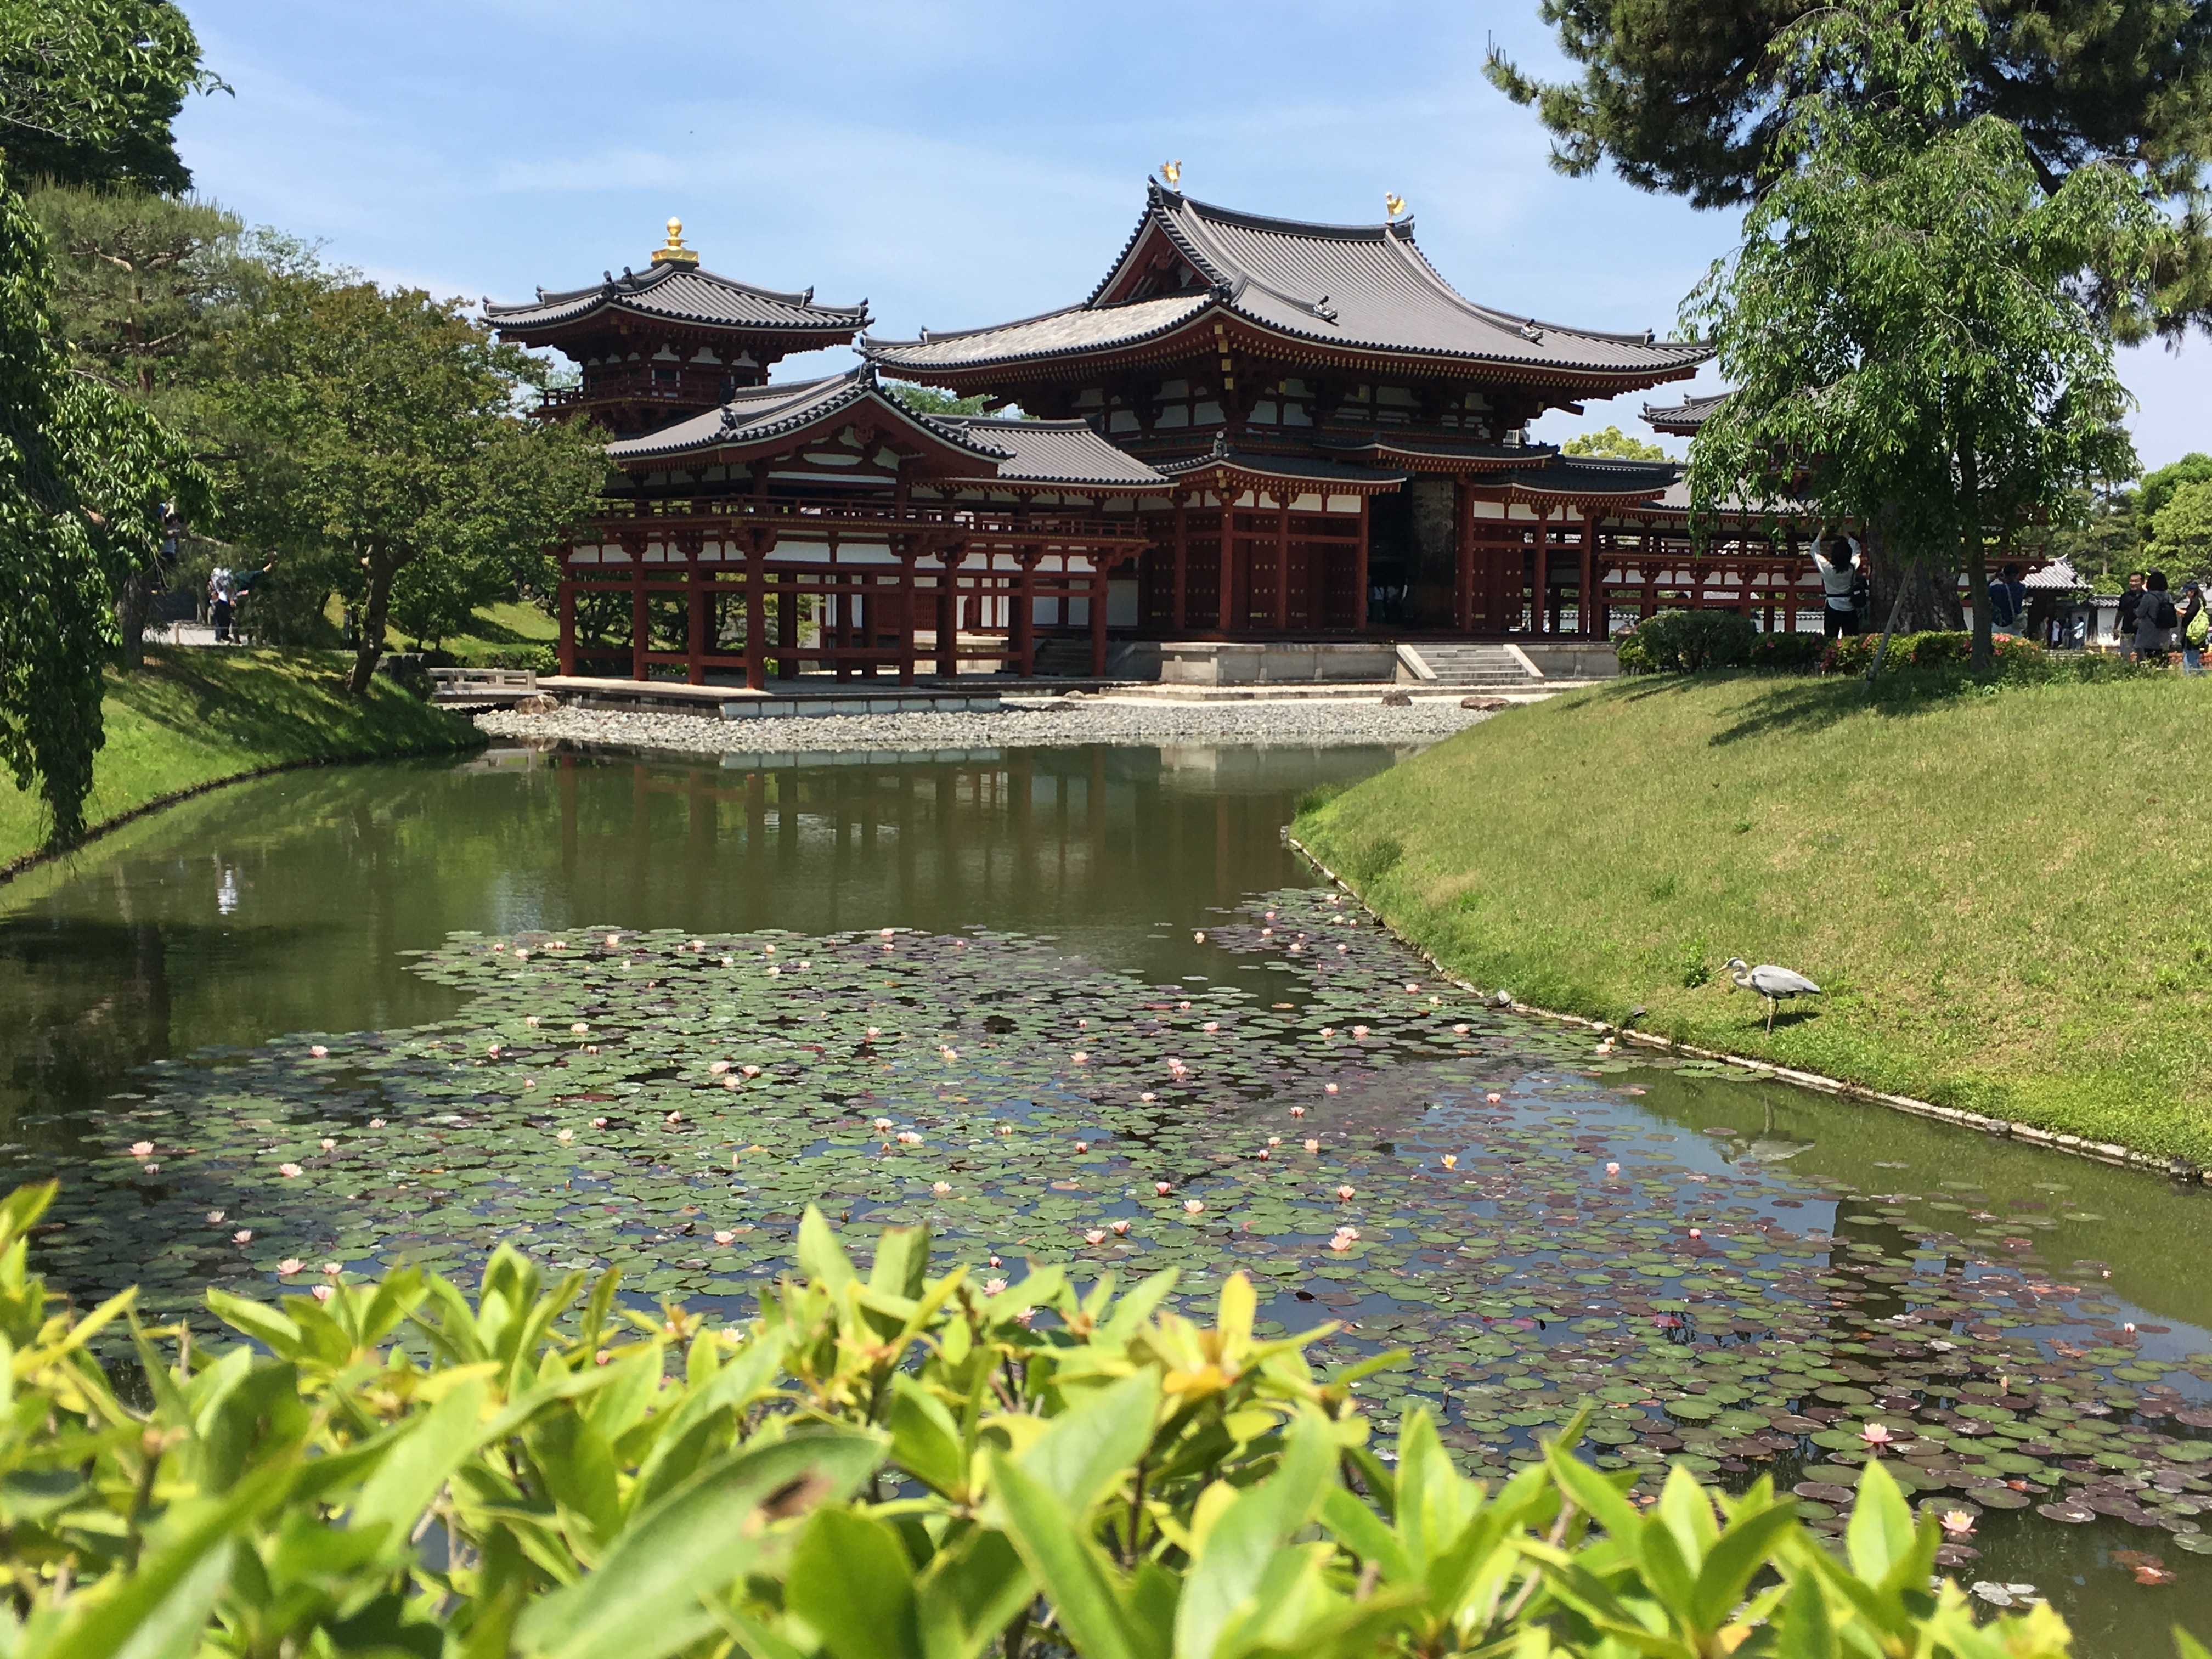 pond in front of the Hooudo at Byodoin Temple plus heron